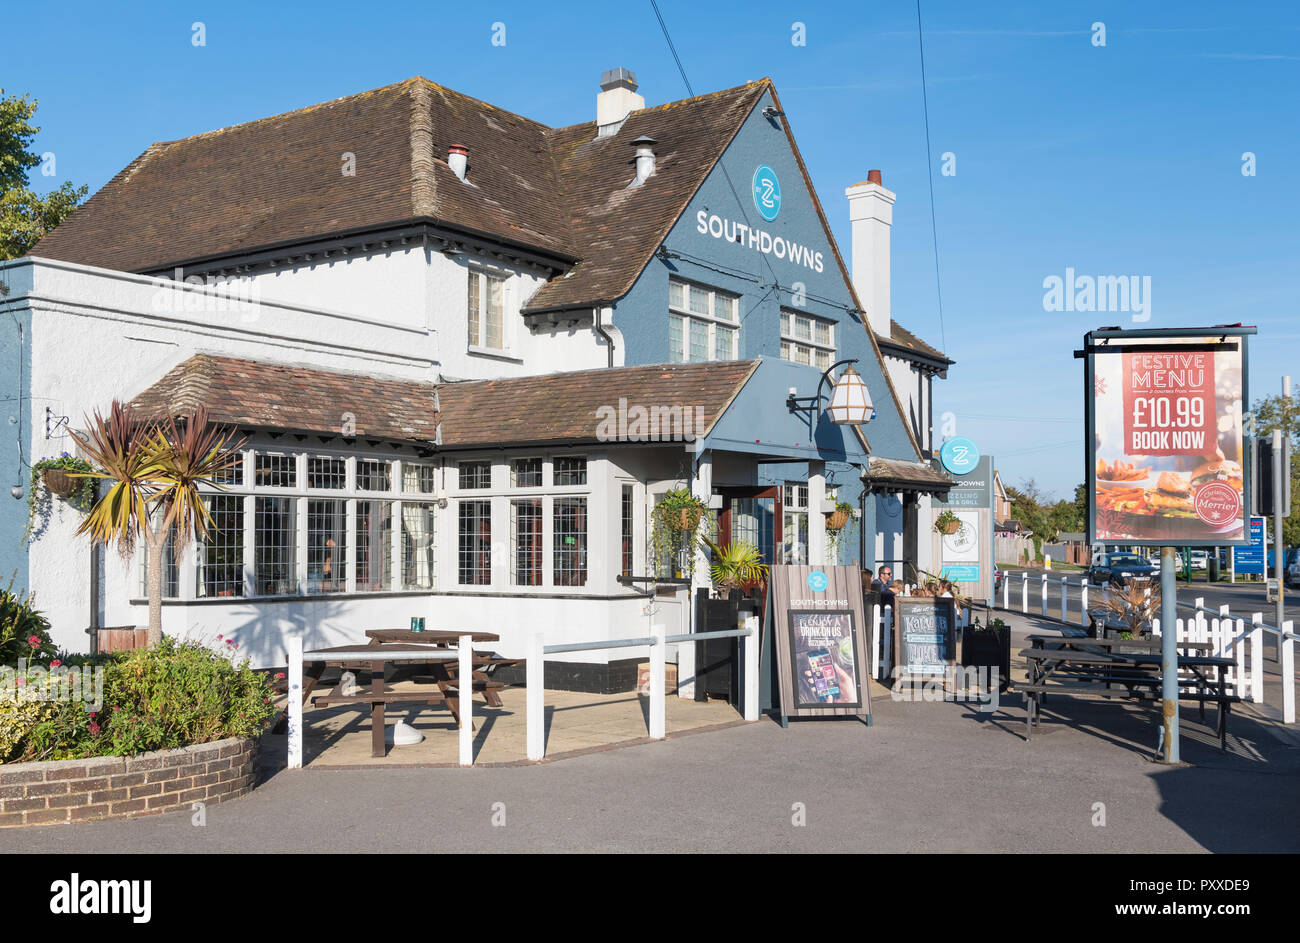 The Southdowns Pub Grill From The Sizzling Pubs Chain In Bognor Regis West Sus